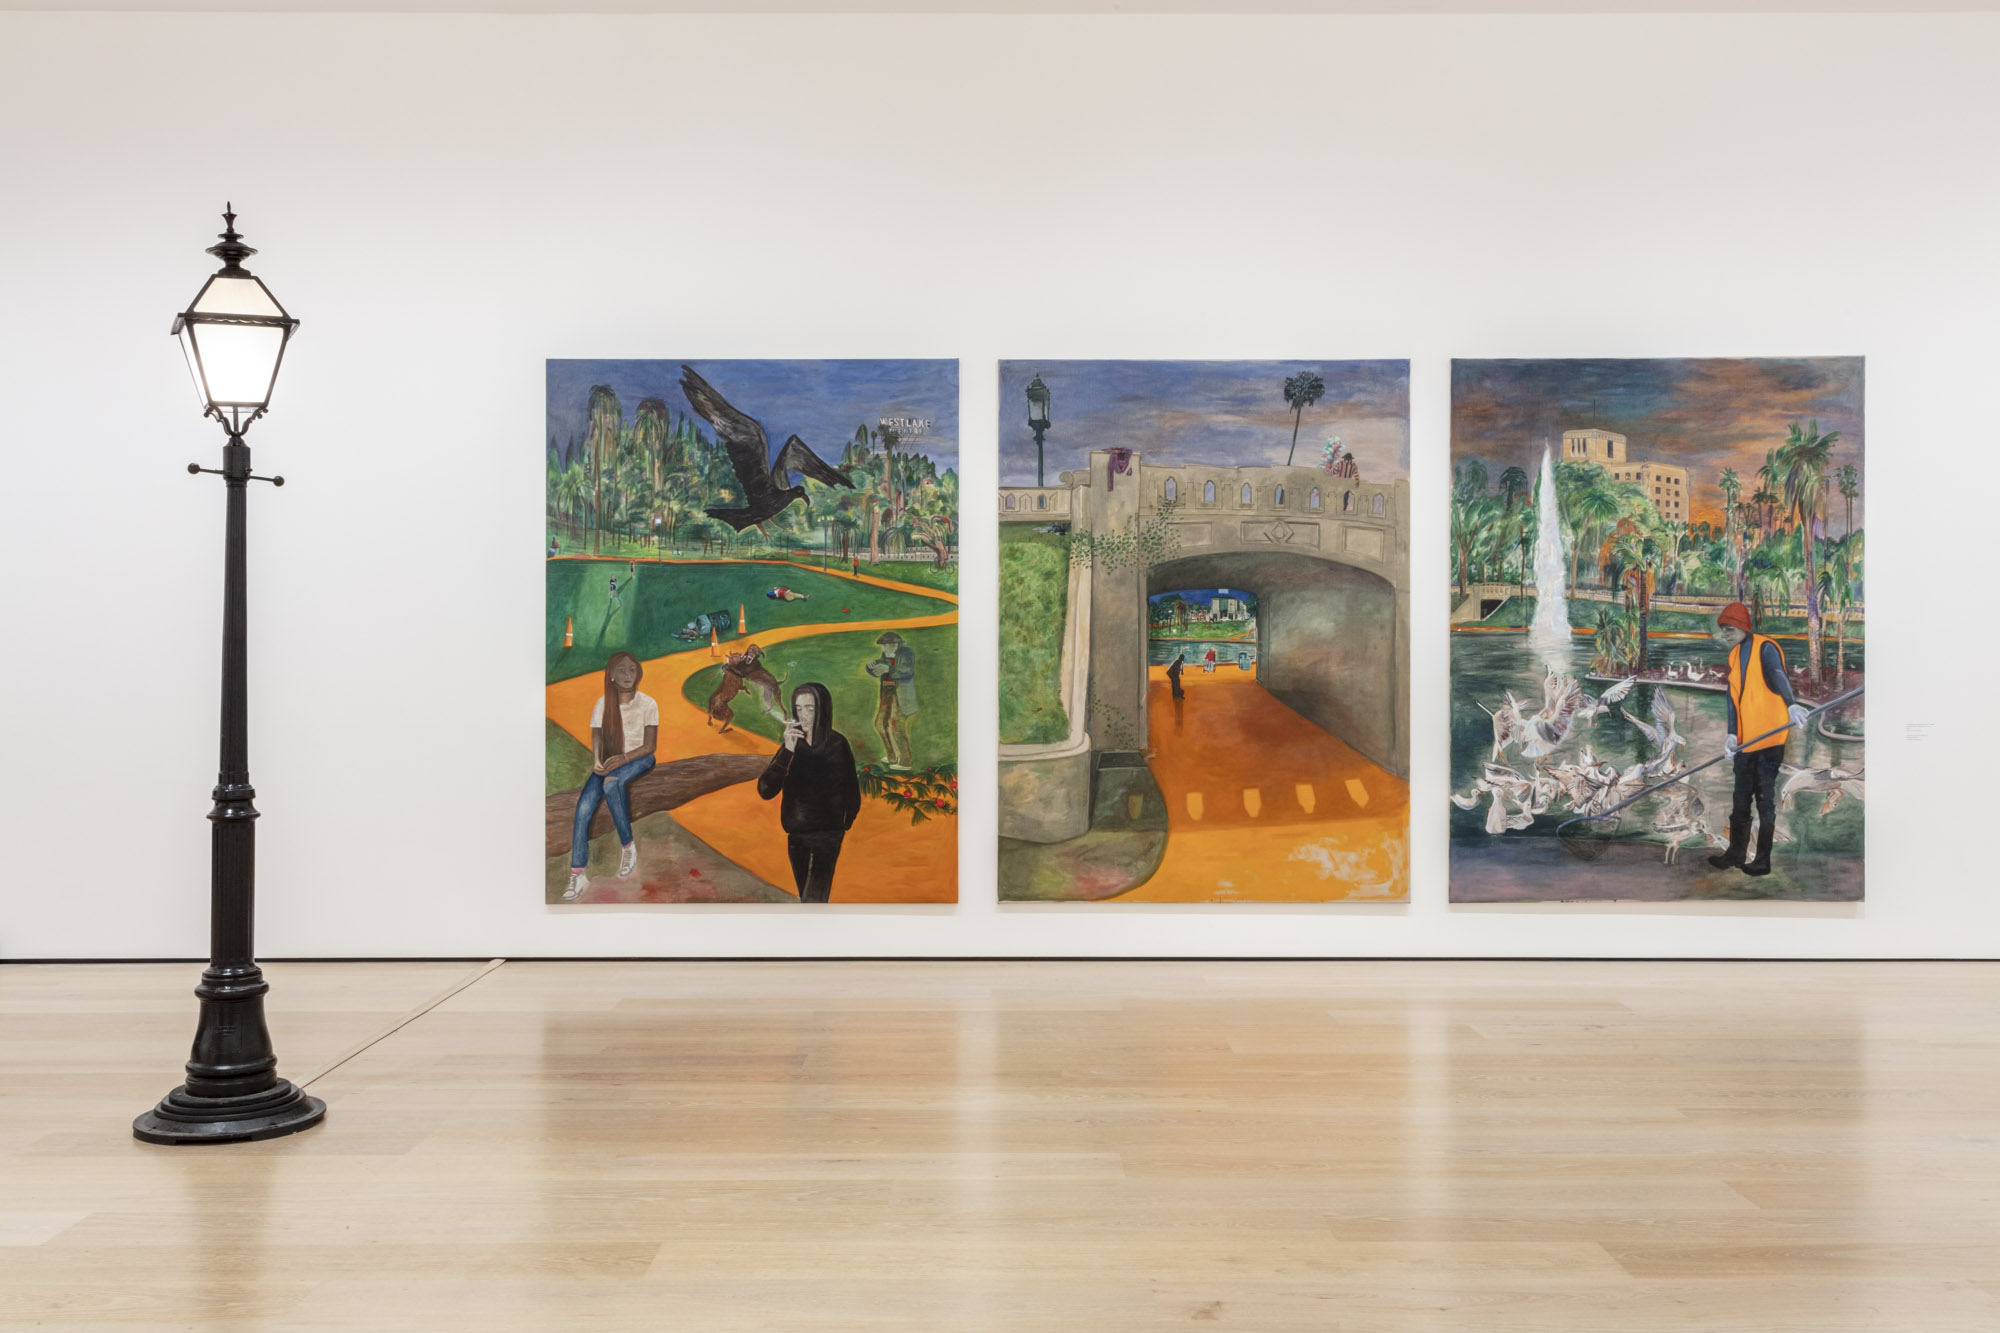 """An installation view of Jill Mulleady's work at """"Made in L.A. 2020: a version."""" at Hammer Museum, Los Angeles. 